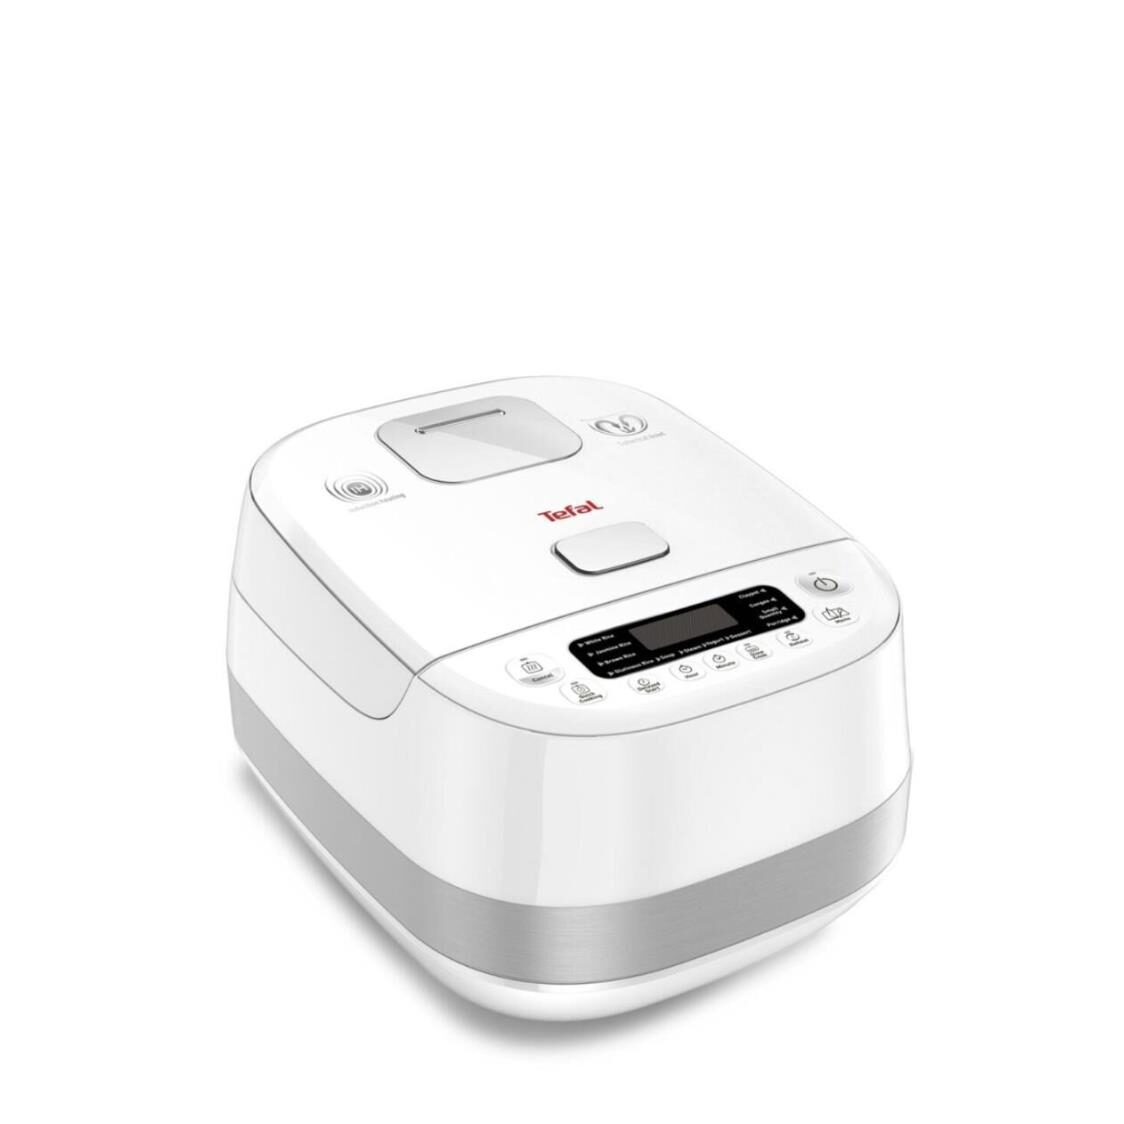 Tefal Delirice Pro Induction Fuzzy Logic Rice Cooker 15L RK808A